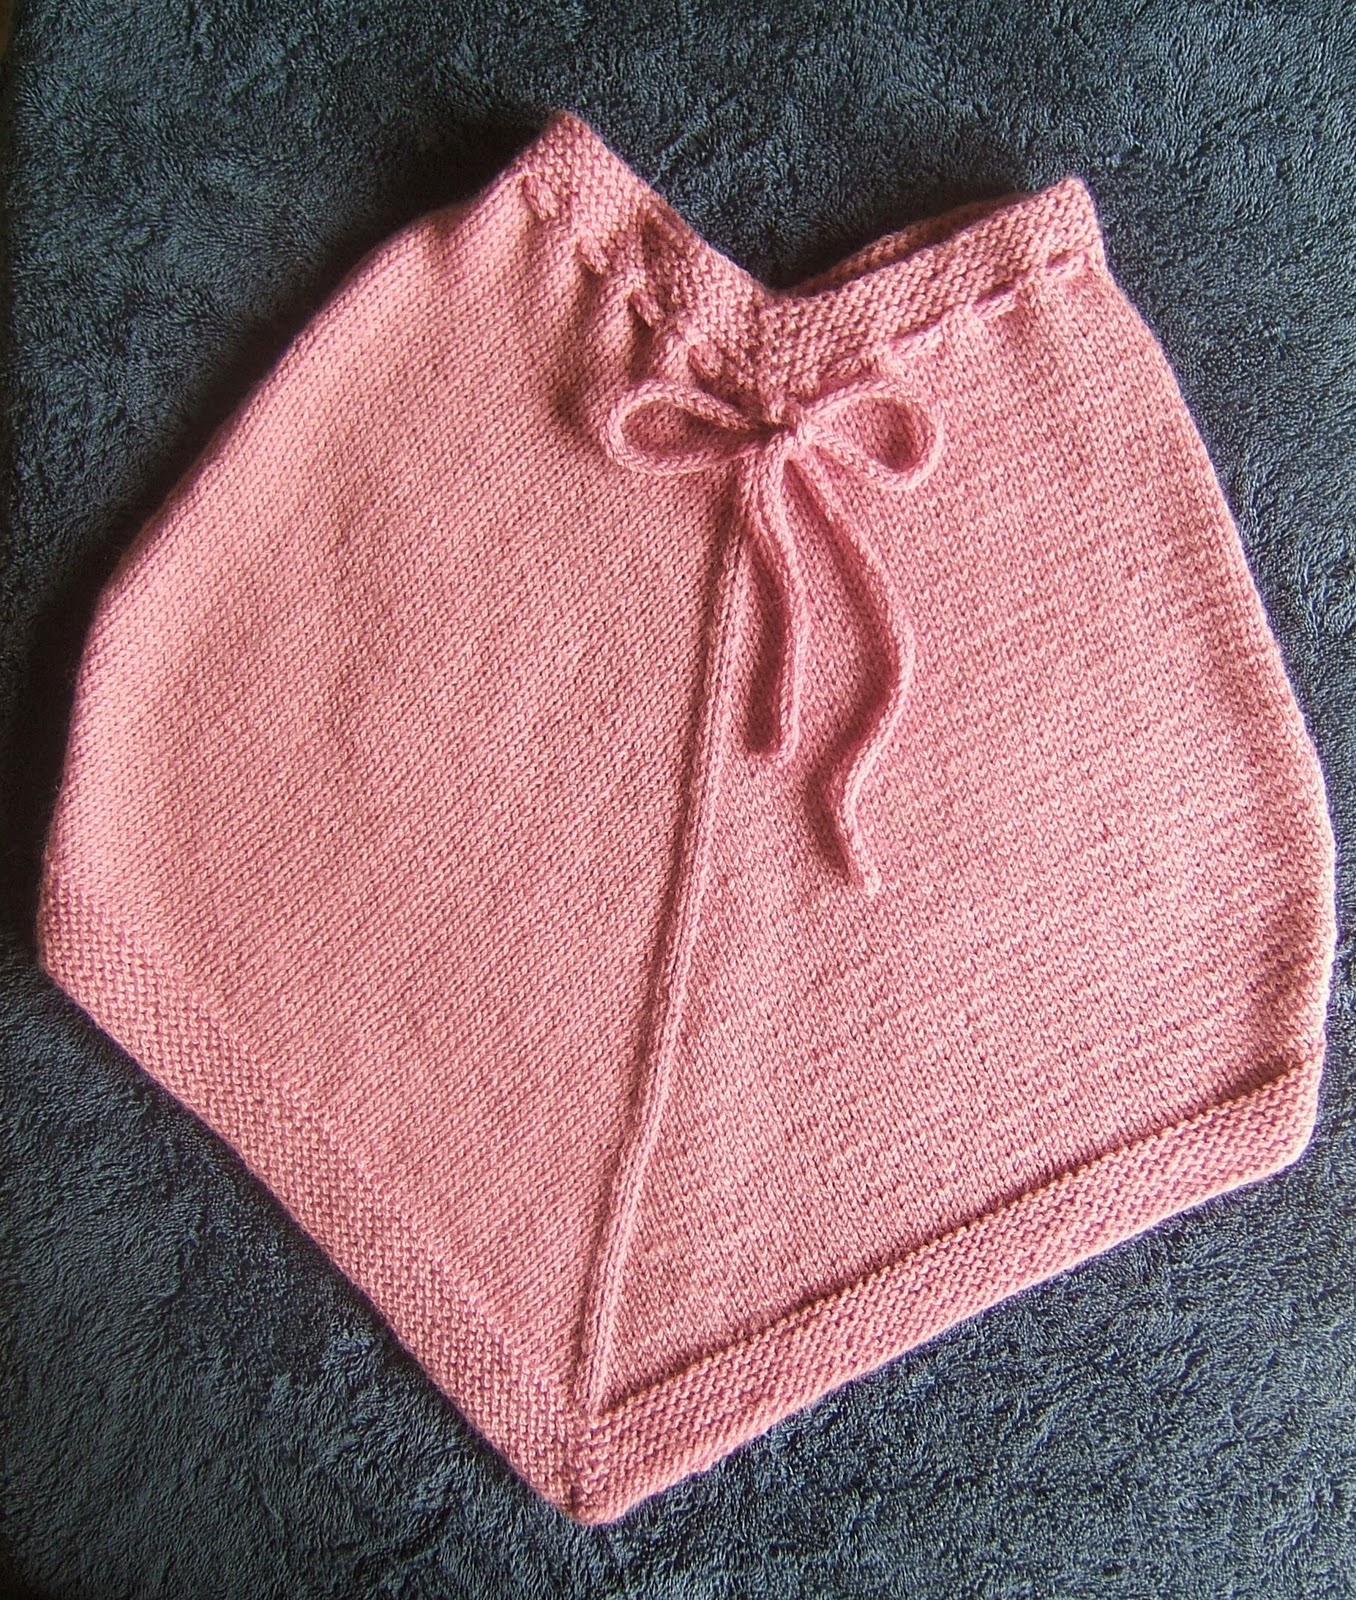 Knitting Pattern For Childs Poncho : aussie knitting threads: Childs Poncho